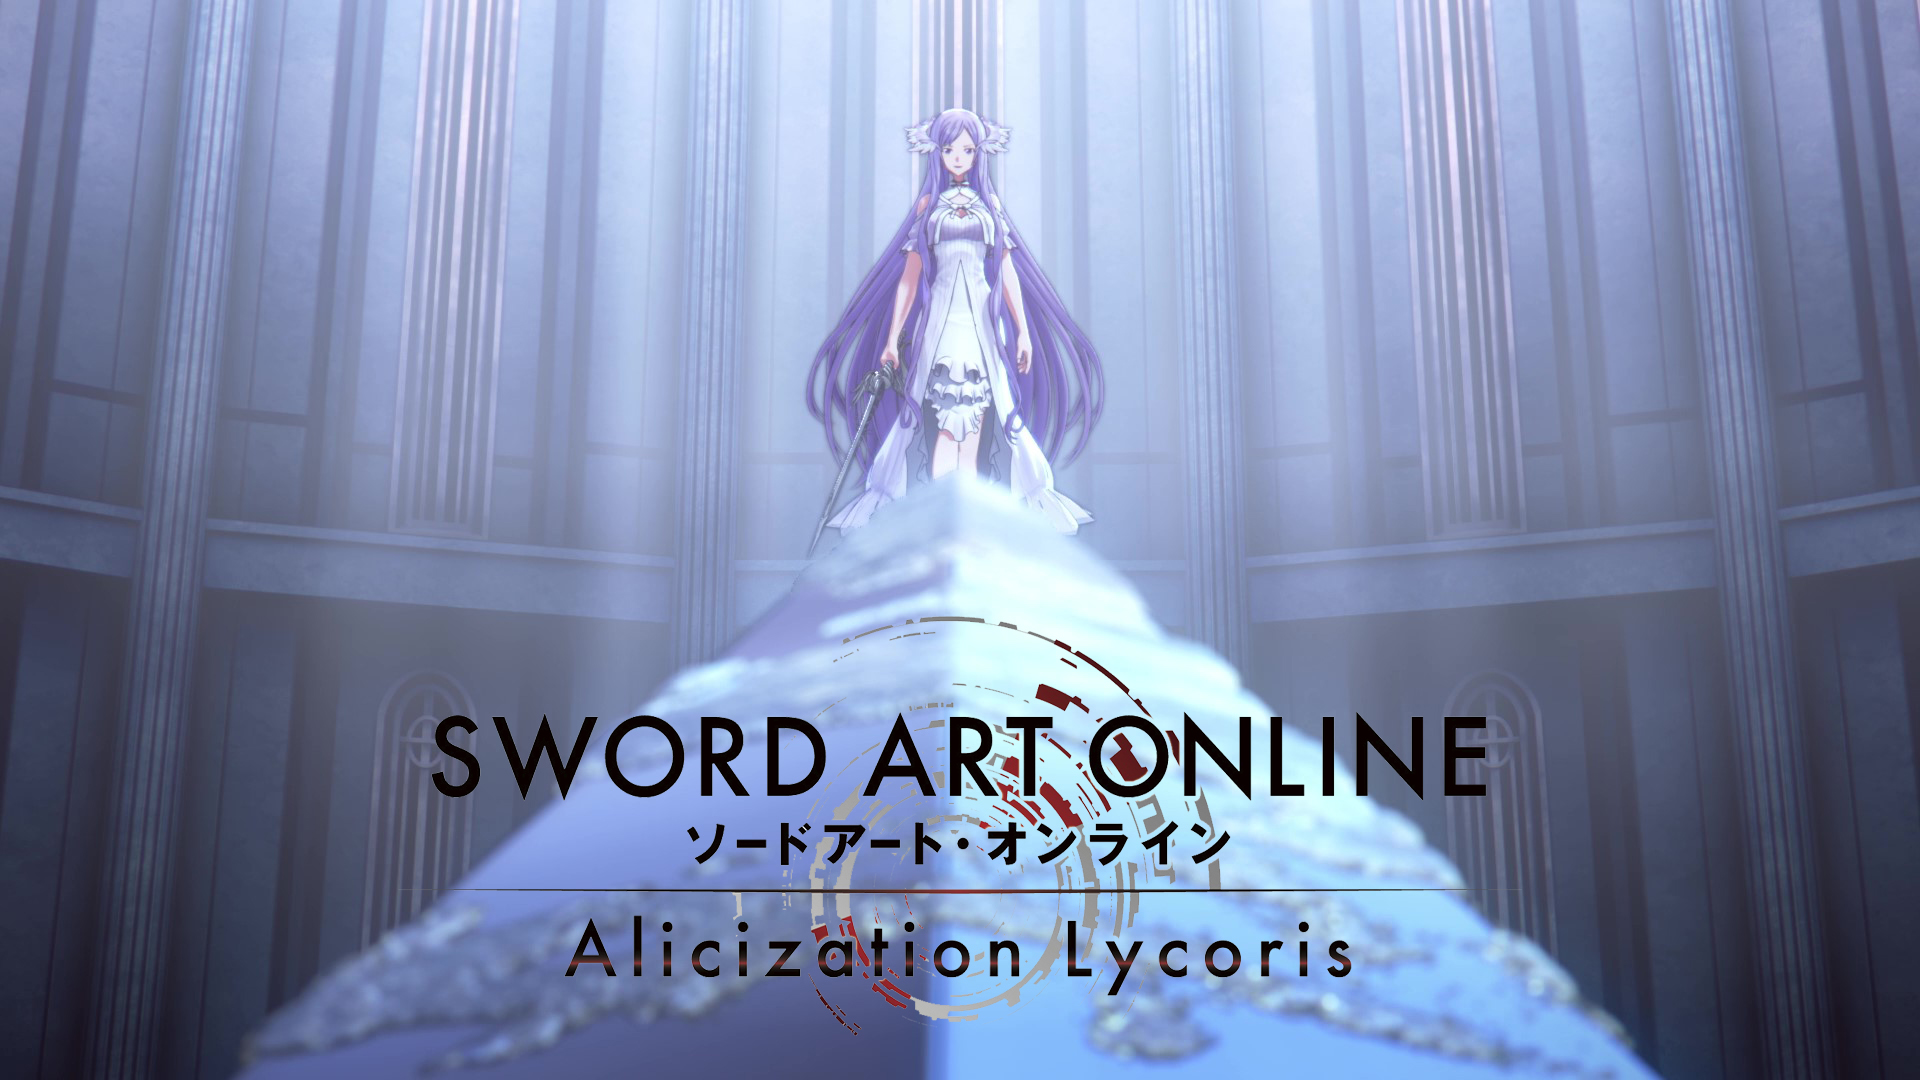 Alicization Lycoris Gets New Gamescom Trailer, Screenshots, and More